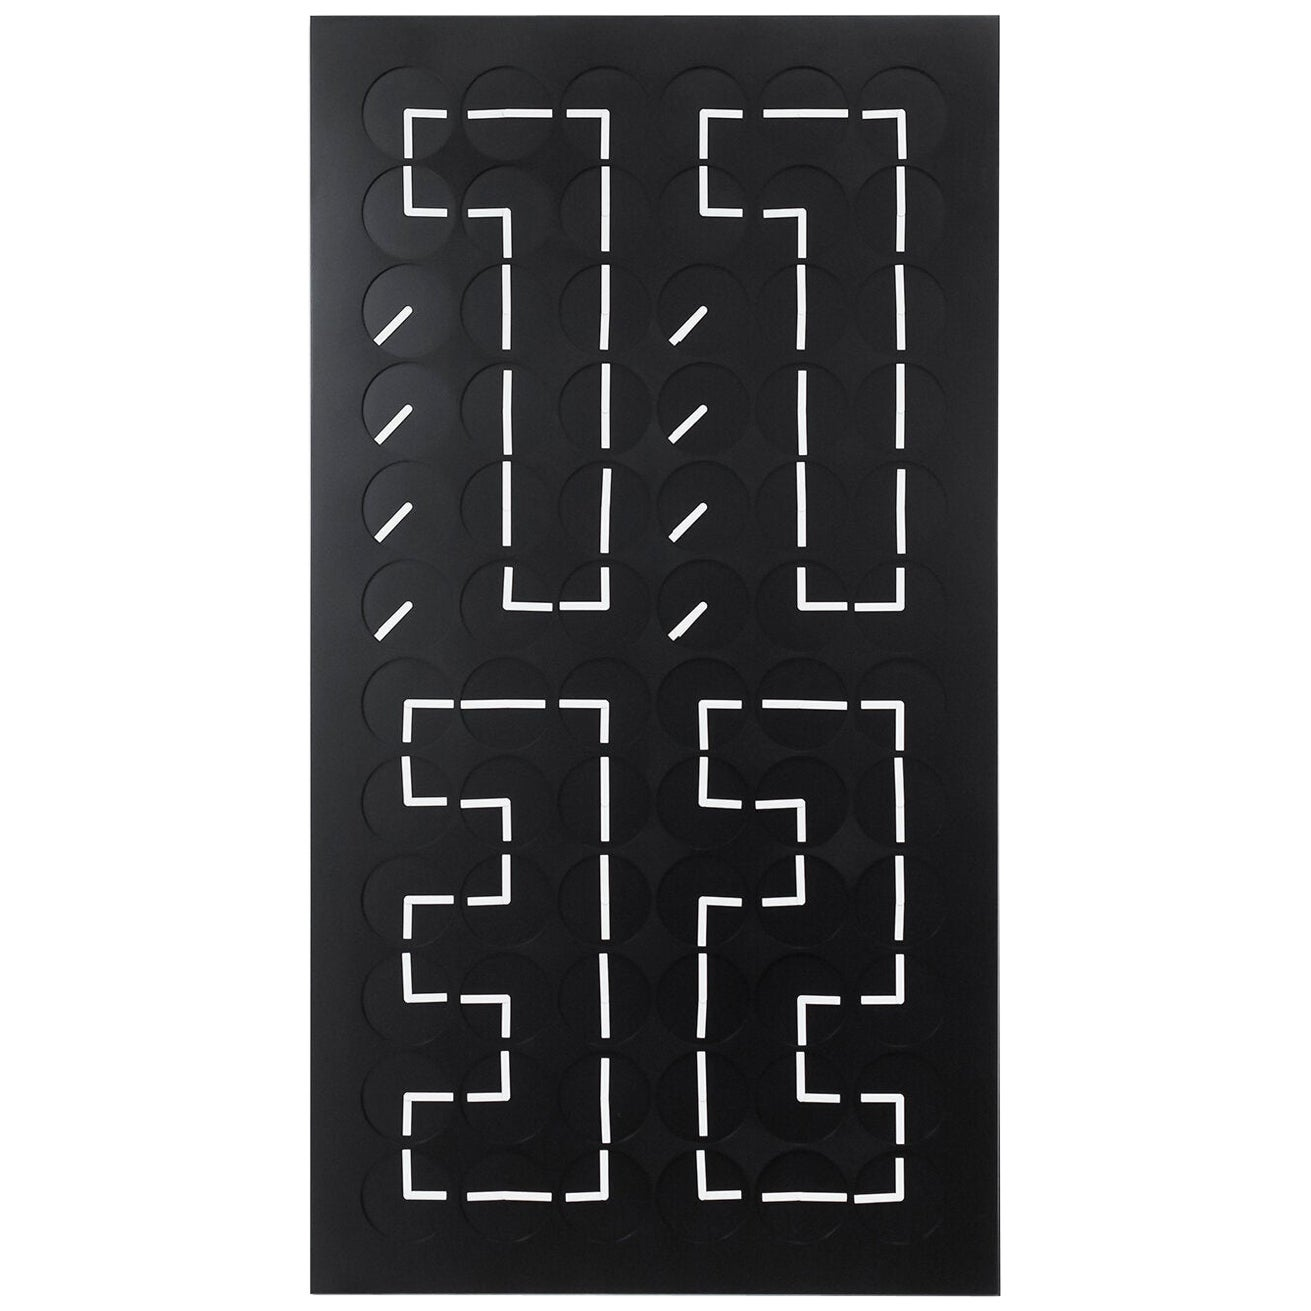 A Million Times 72V Black Wall Clock Wall Sculpture by Humans Since 1982